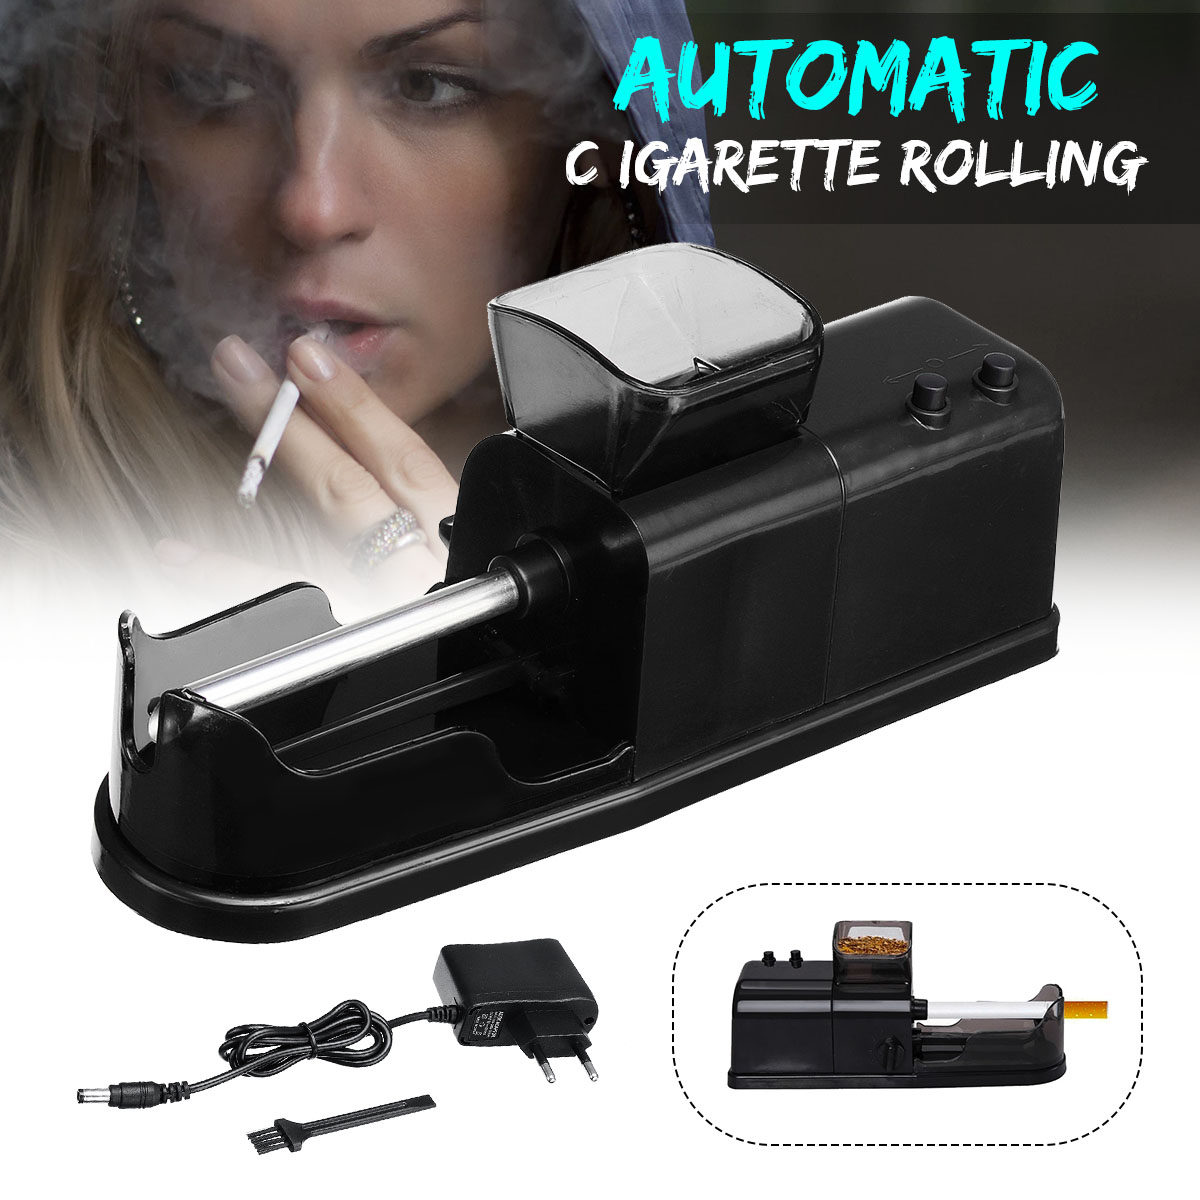 1pc Electric Easy Automatic Cigarette Rolling Machine Injector With Function Credibility Adapter Tobacco Maker Roller